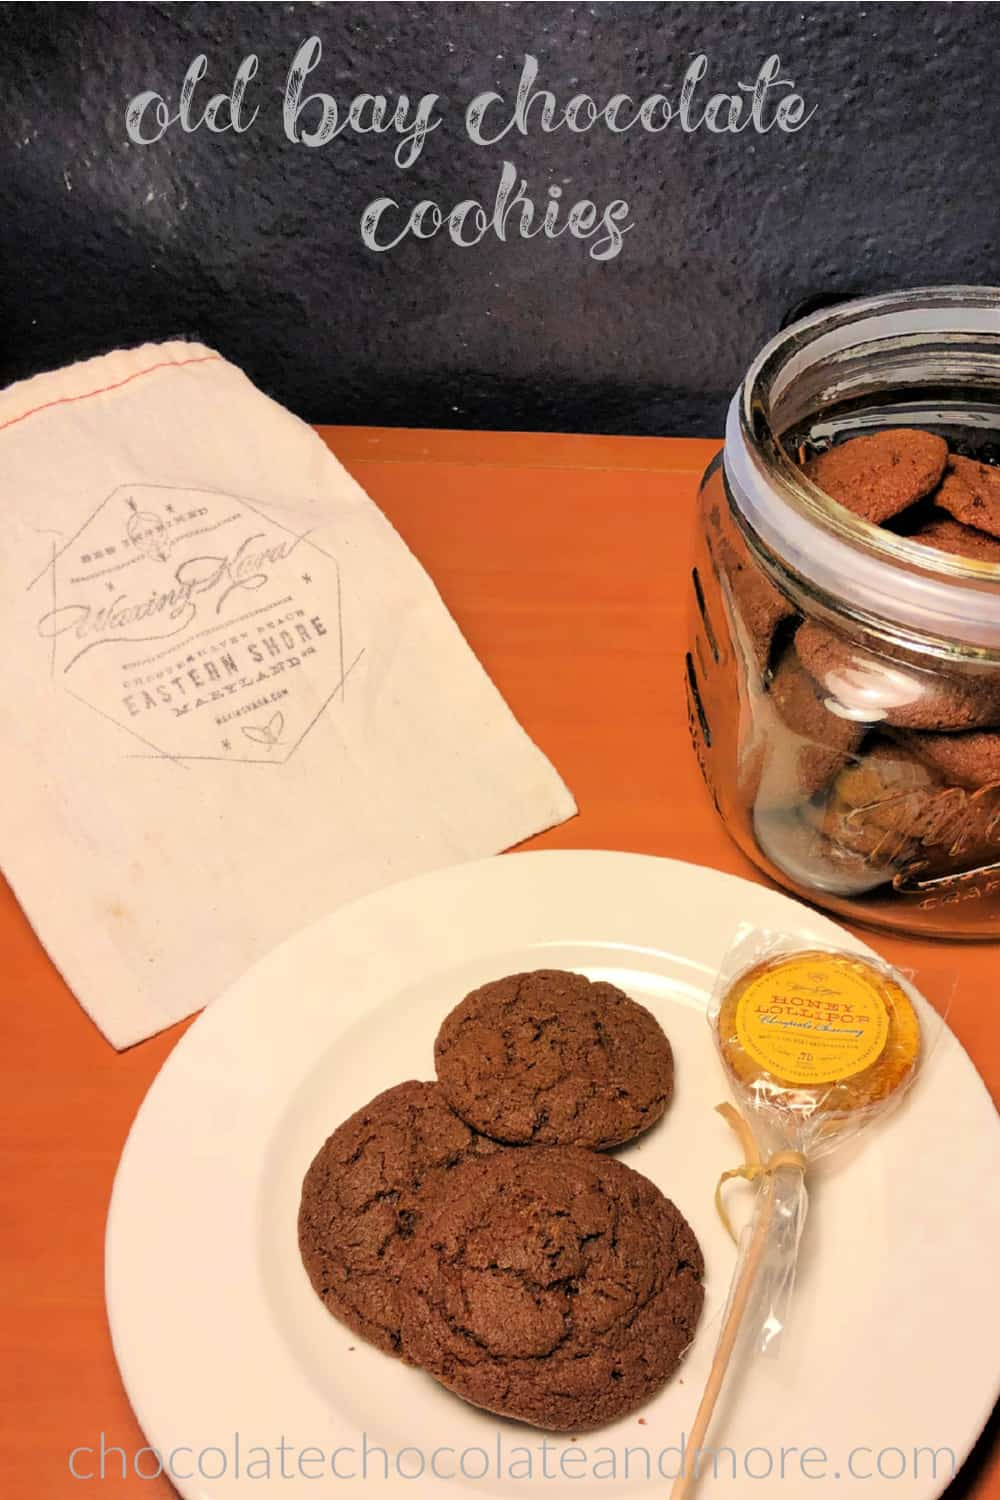 A white plate with three chocolate cookies and a lollipopis in the foreground. A glass cookie jar filled with chocolate cookies is on the right and a muslin sack with the Waxing Kara logo is on the left